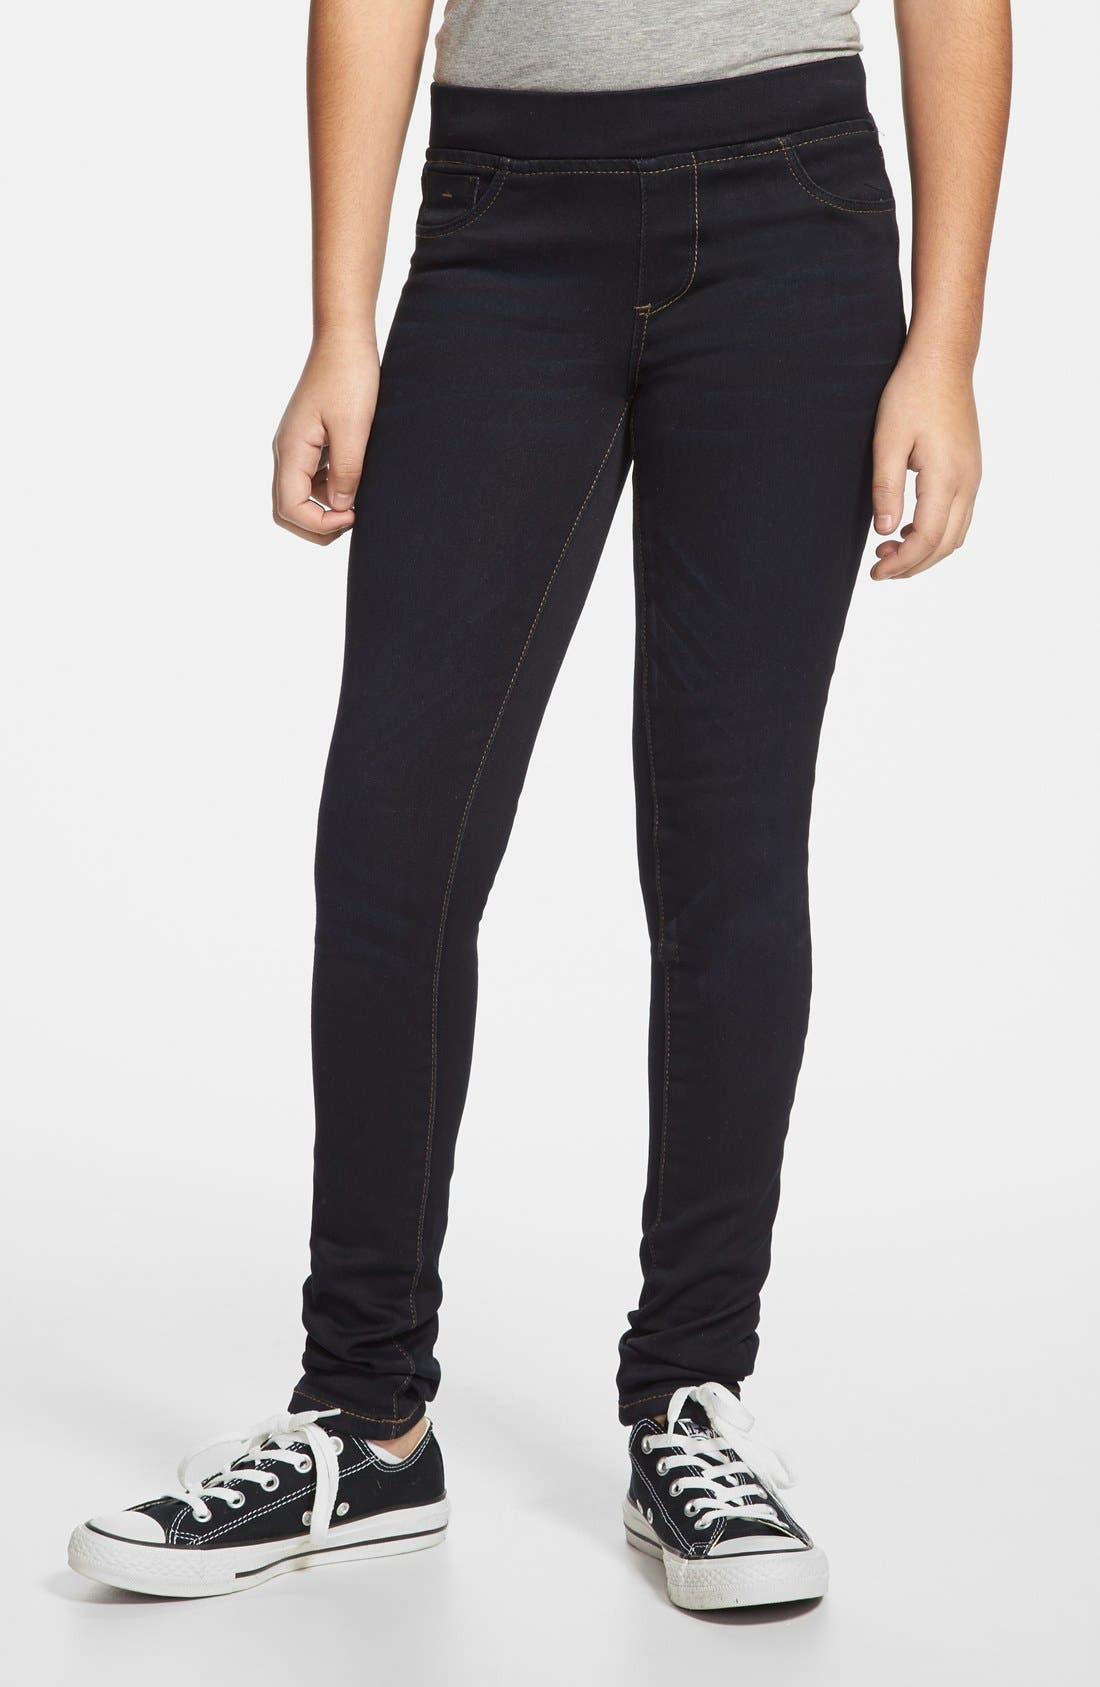 Alternate Image 1 Selected - Tractr Pull-On Skinny Jeans (Big Girls)